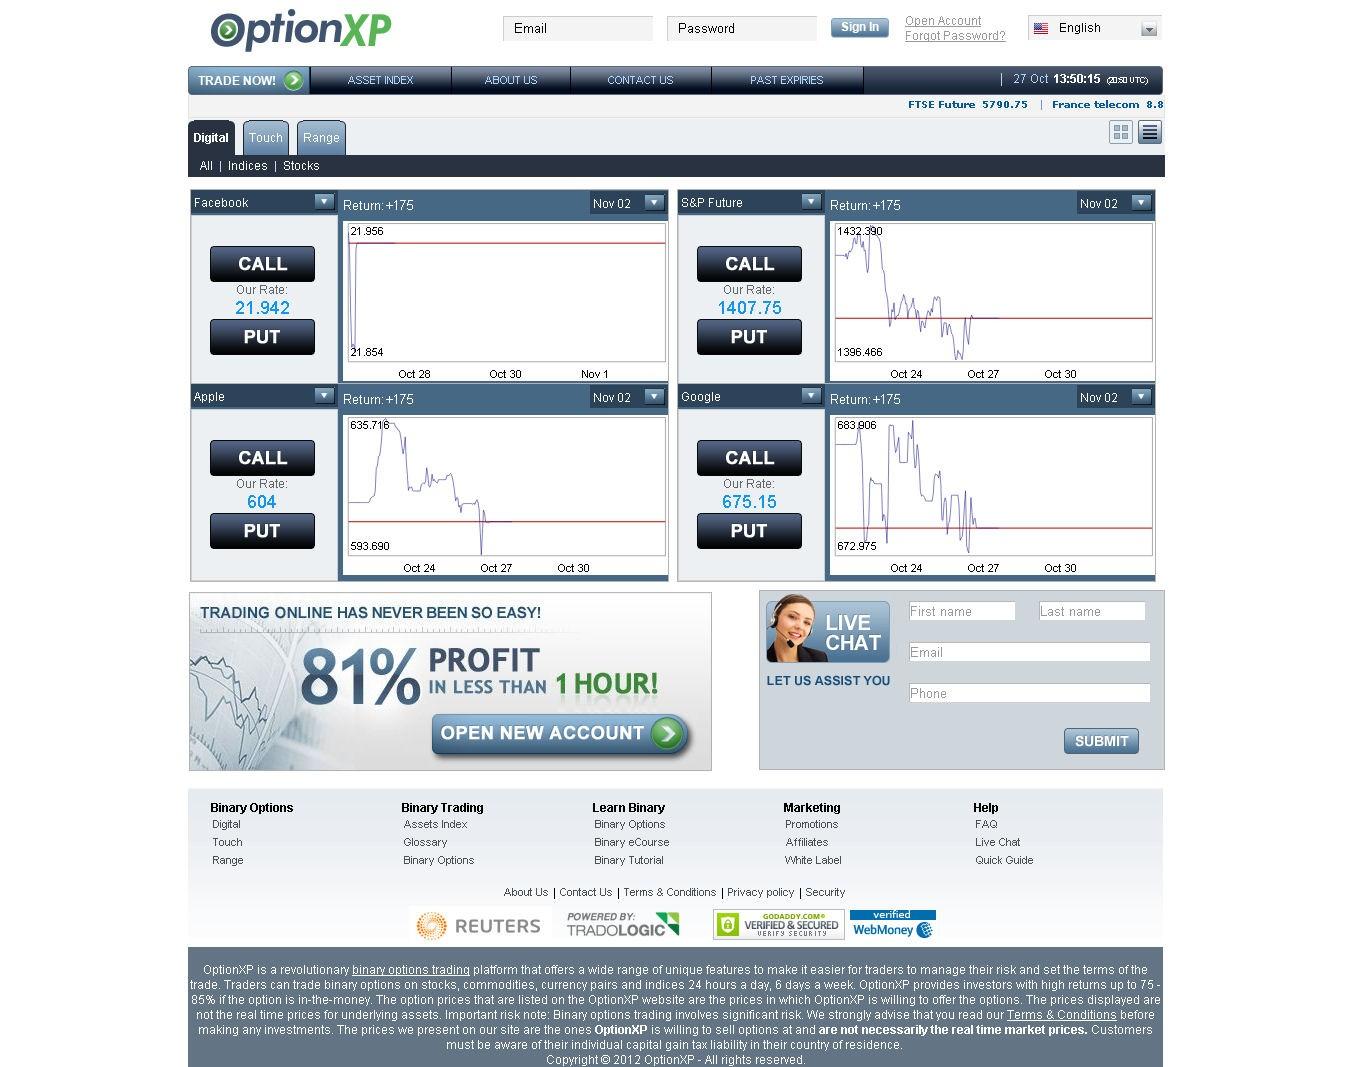 elite options binary trading usa brokers